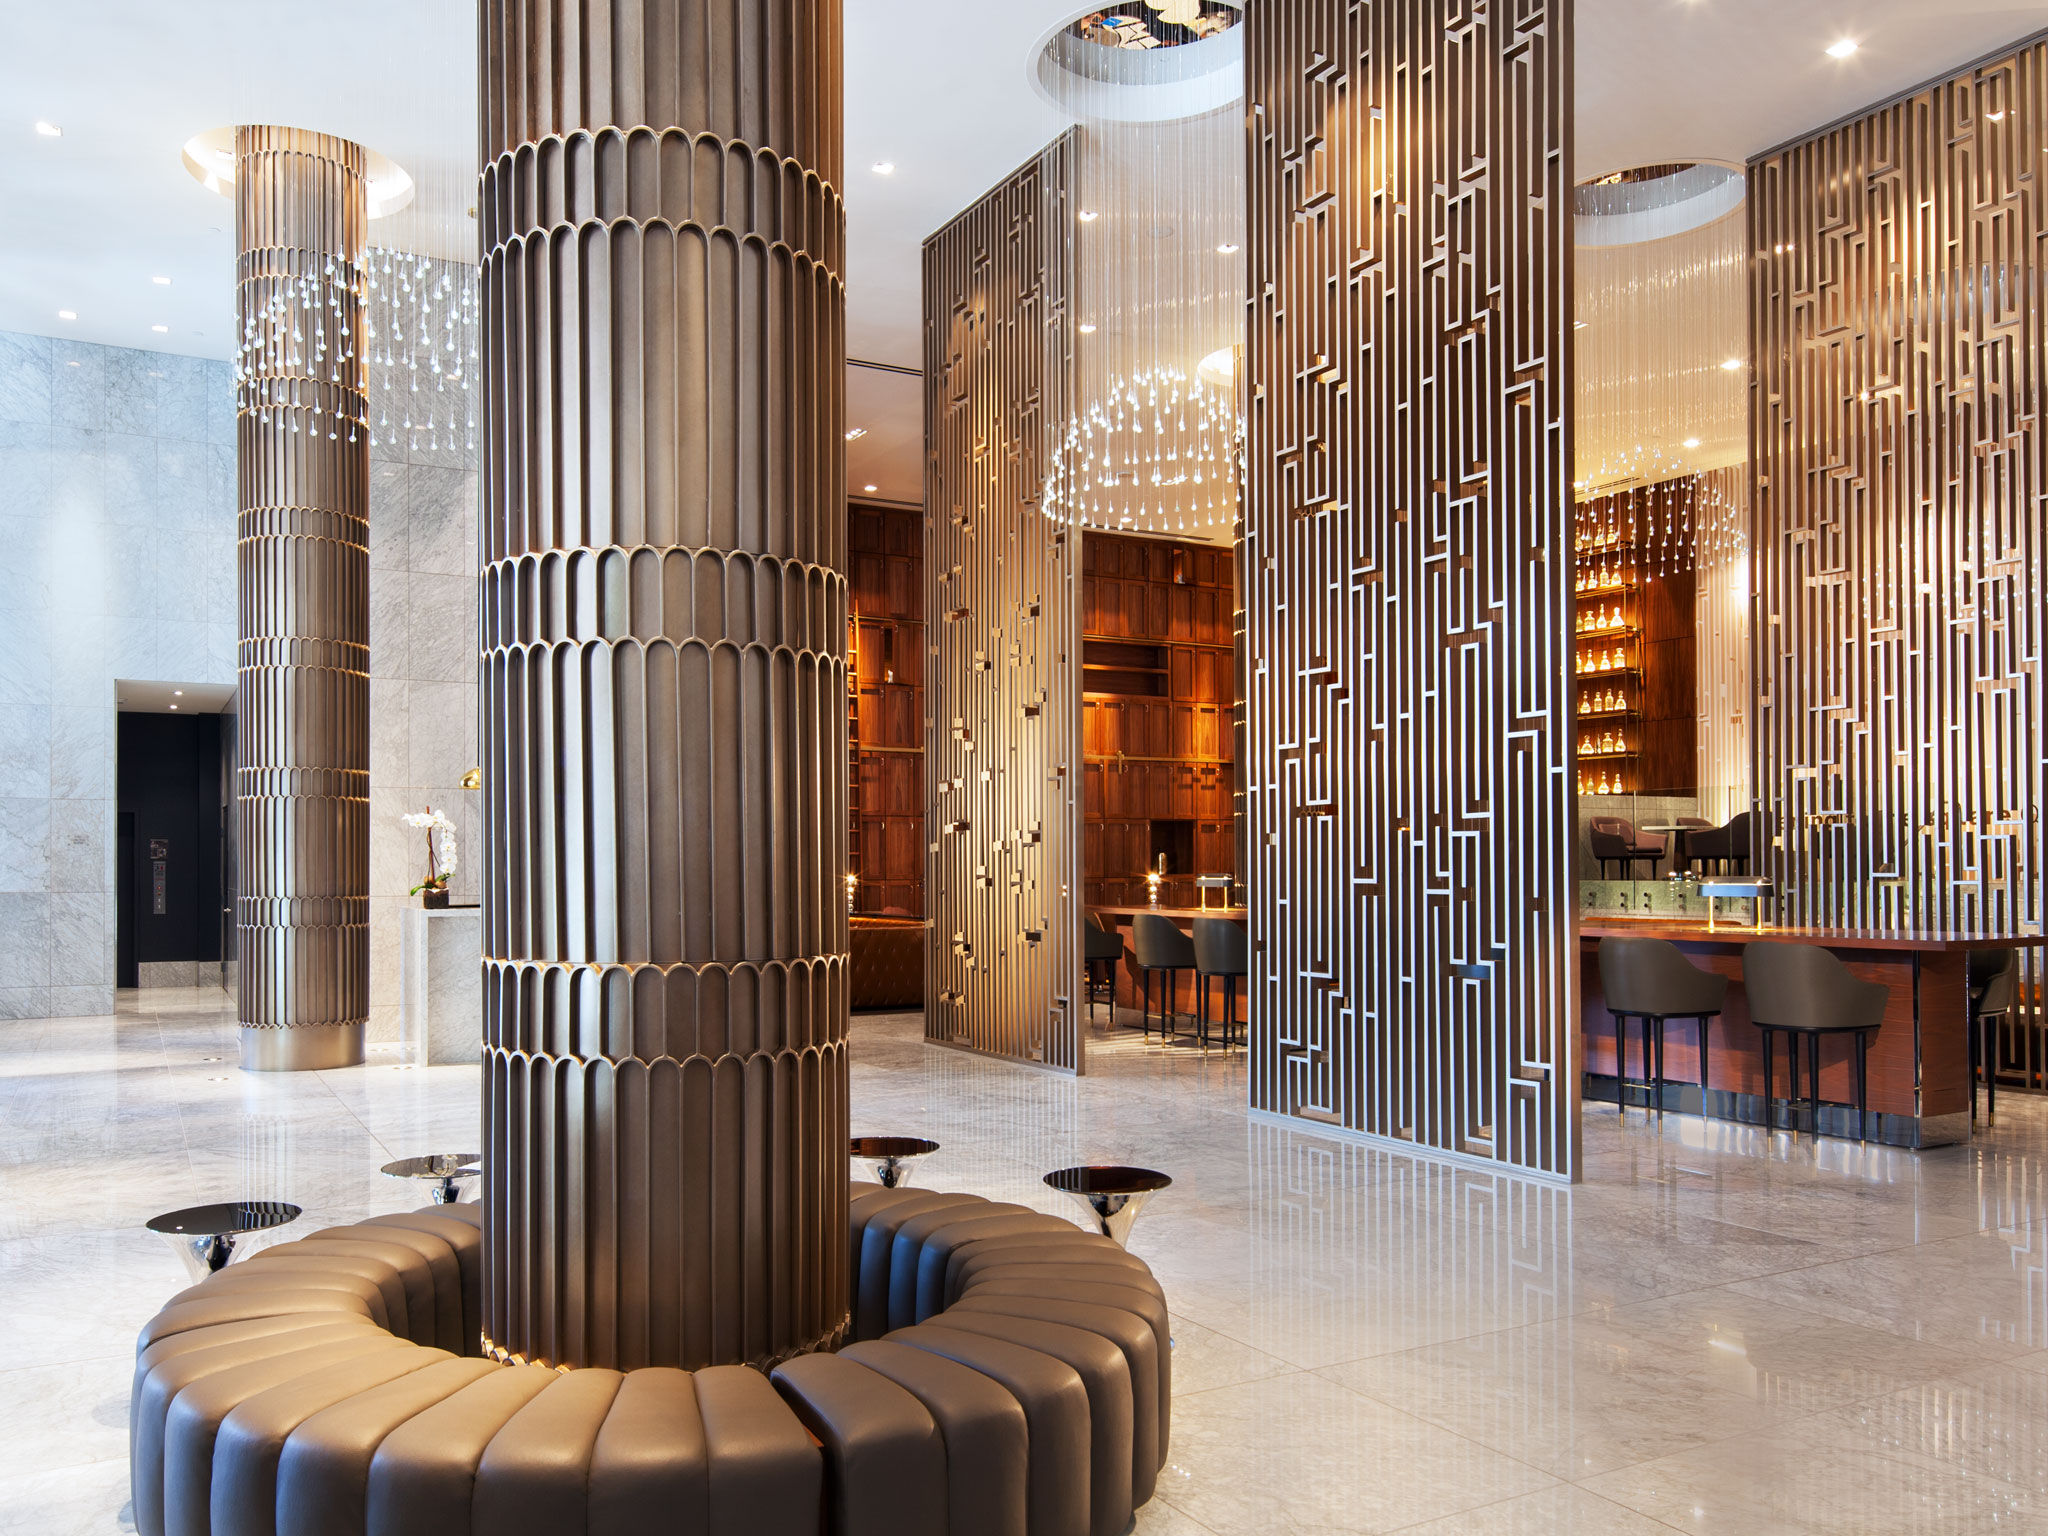 DTLA Sheraton - Decorative Lobby Screens and Columns